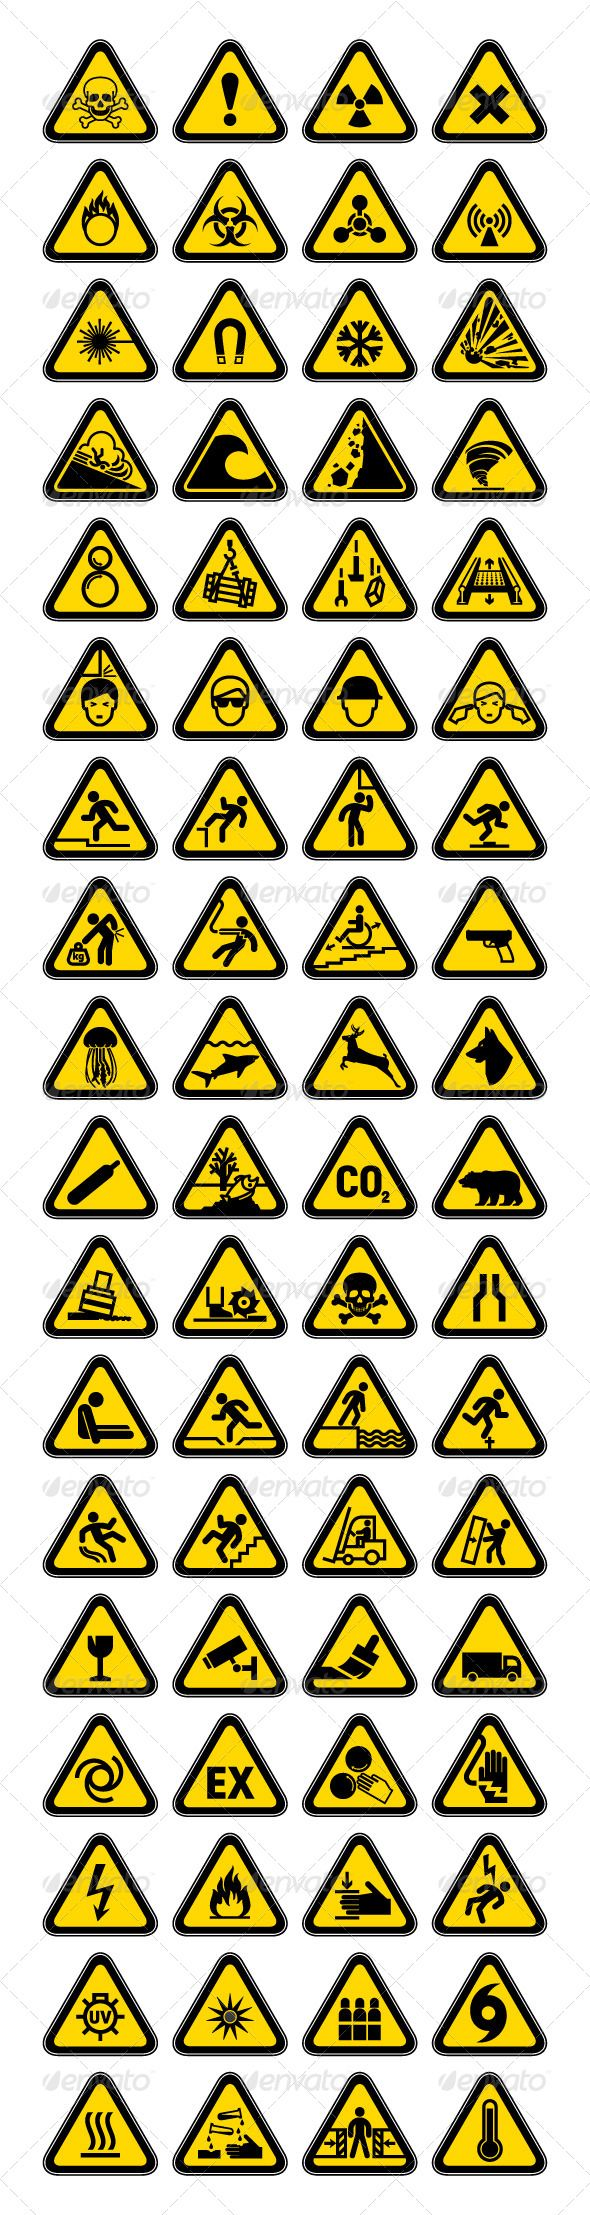 Know your chemical hazard symbols httpwpp4aplt 1d8 know your chemical hazard symbols httpwpp4aplt 1d8 chemical hazard marks pinterest hazard symbol chemistry and teaching science buycottarizona Gallery